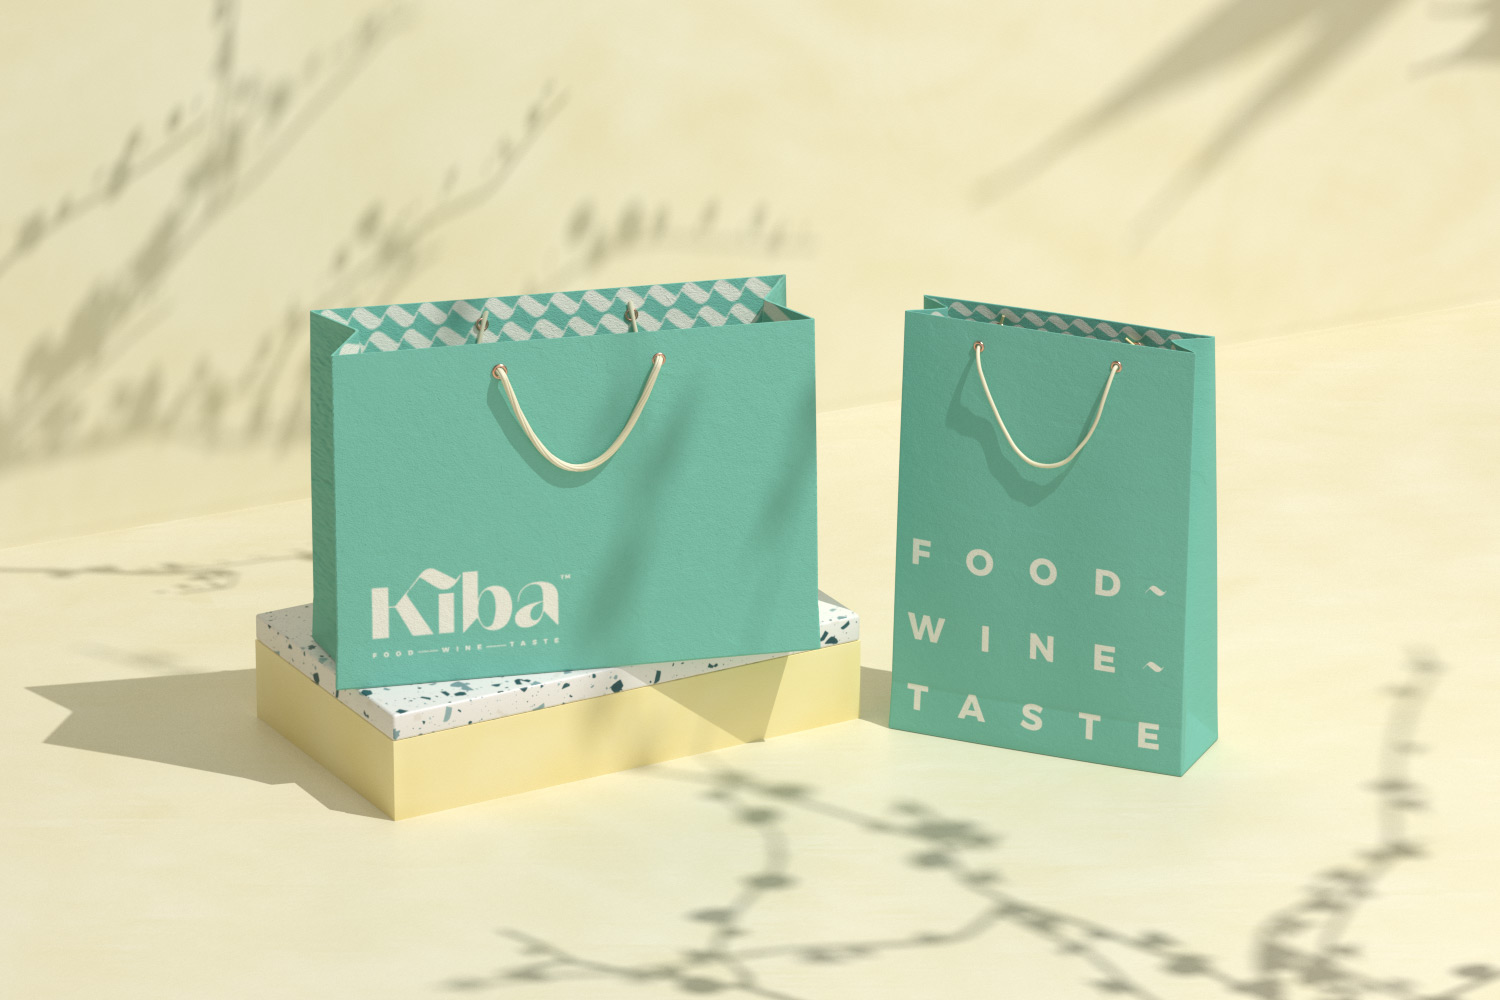 Kiba Sagon shopping bags